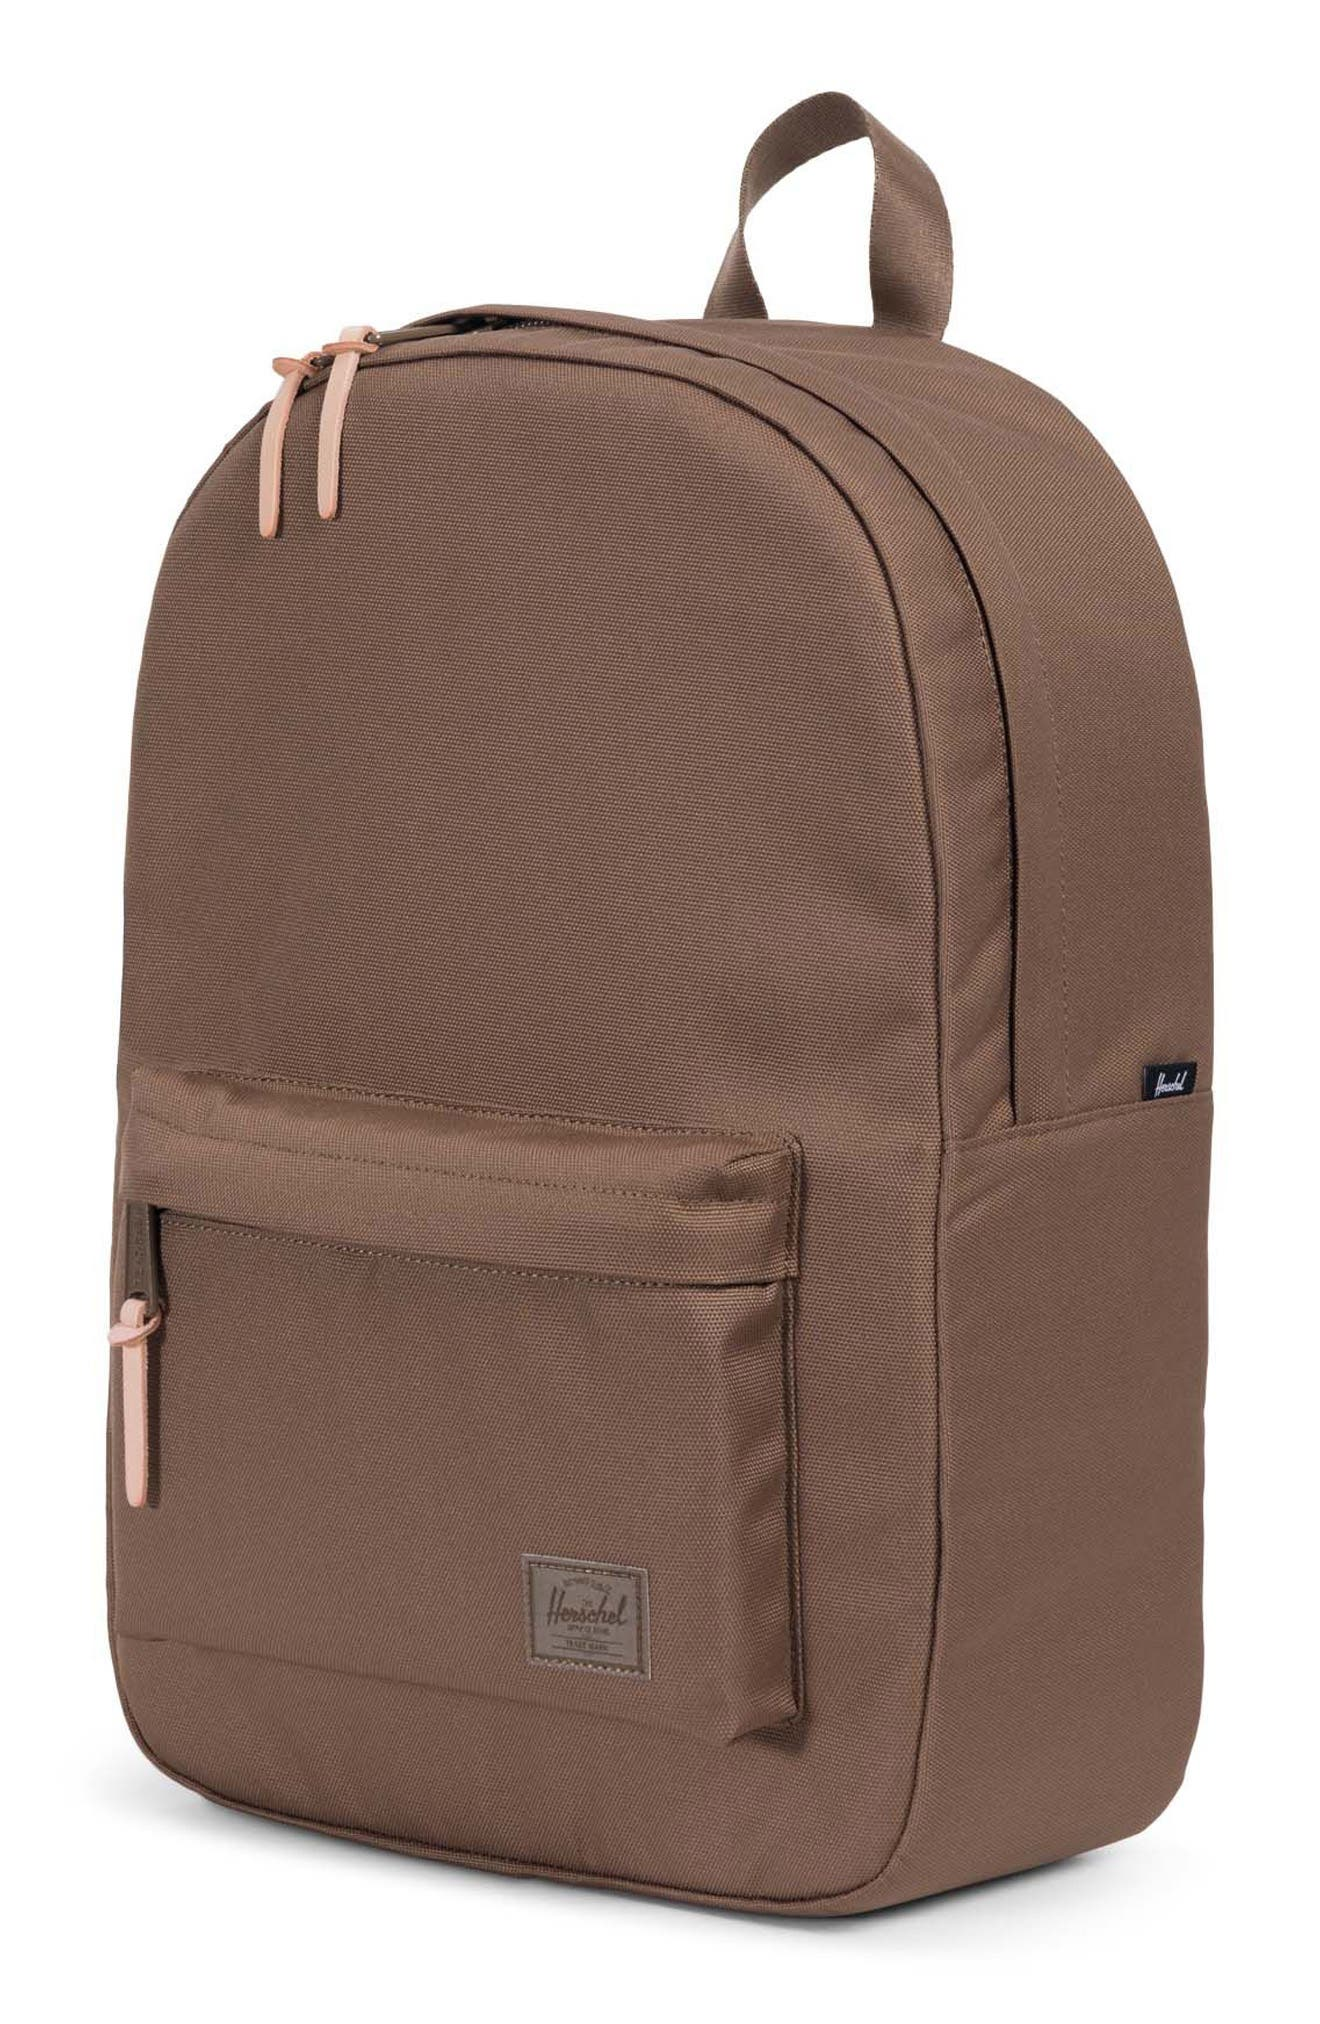 Winlaw Backpack,                             Alternate thumbnail 4, color,                             Cub